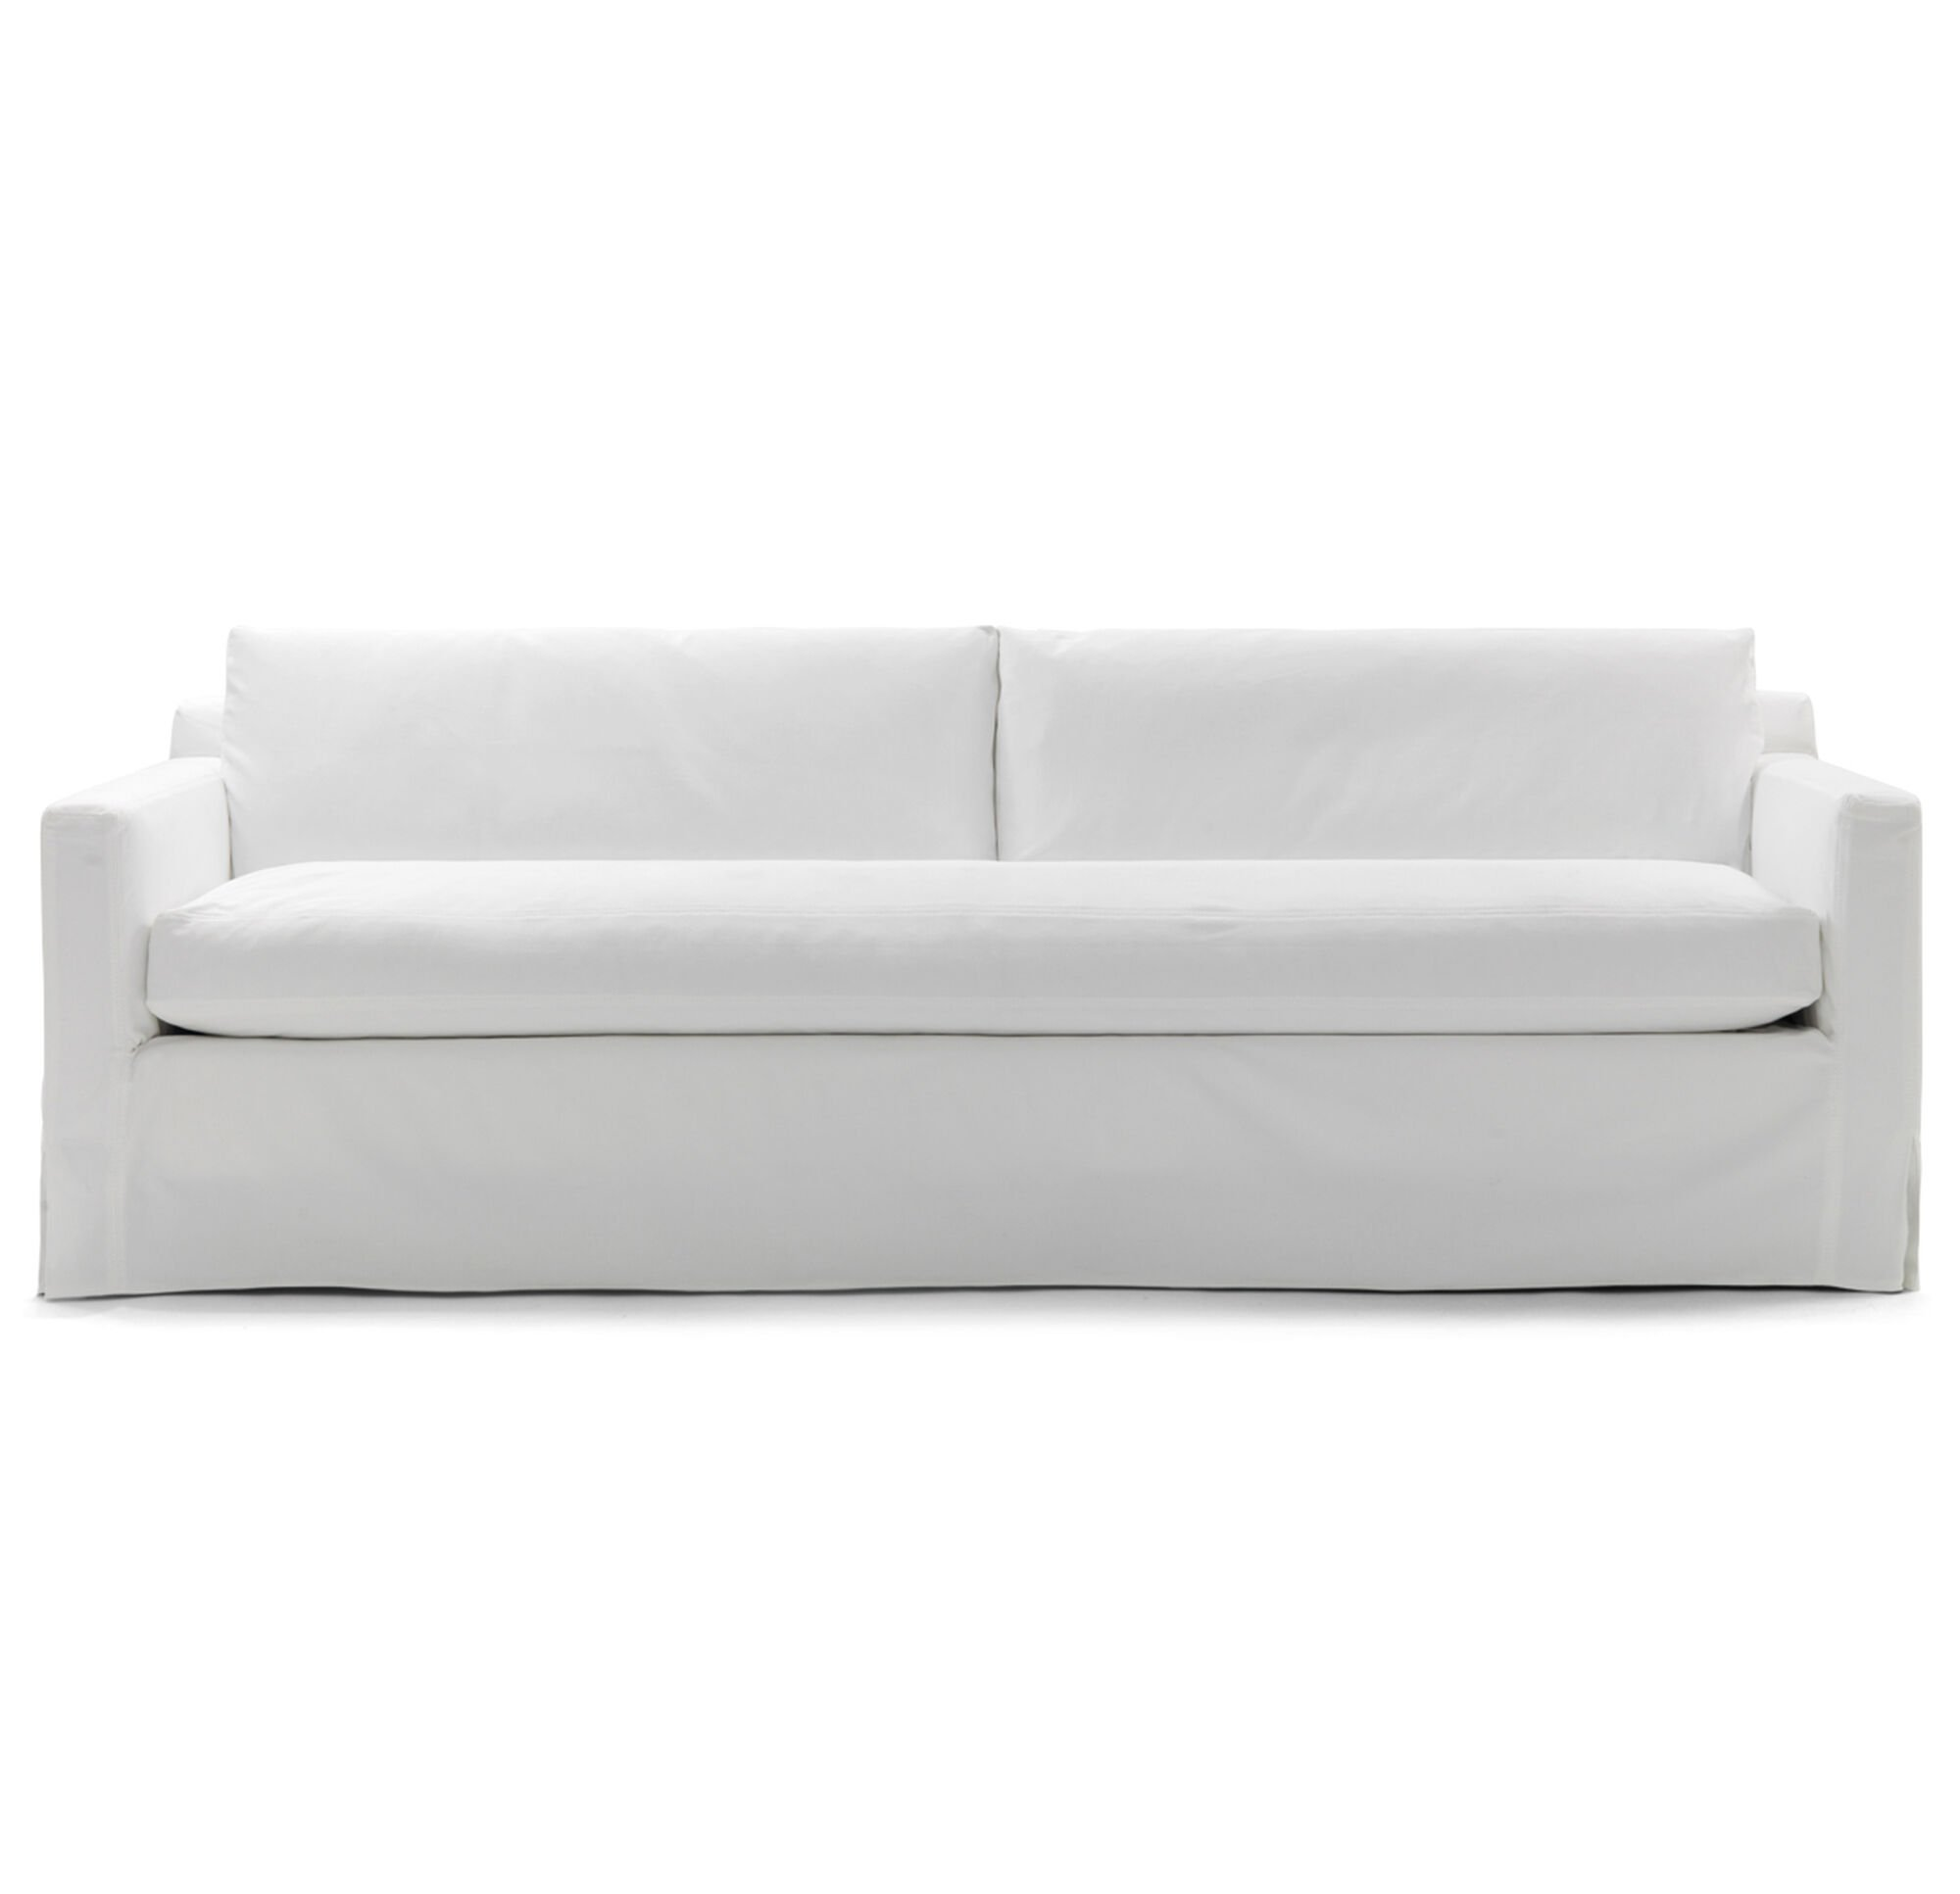 slipcover alt furniture chic shabby slipcovered reese sofa circle couch outlet